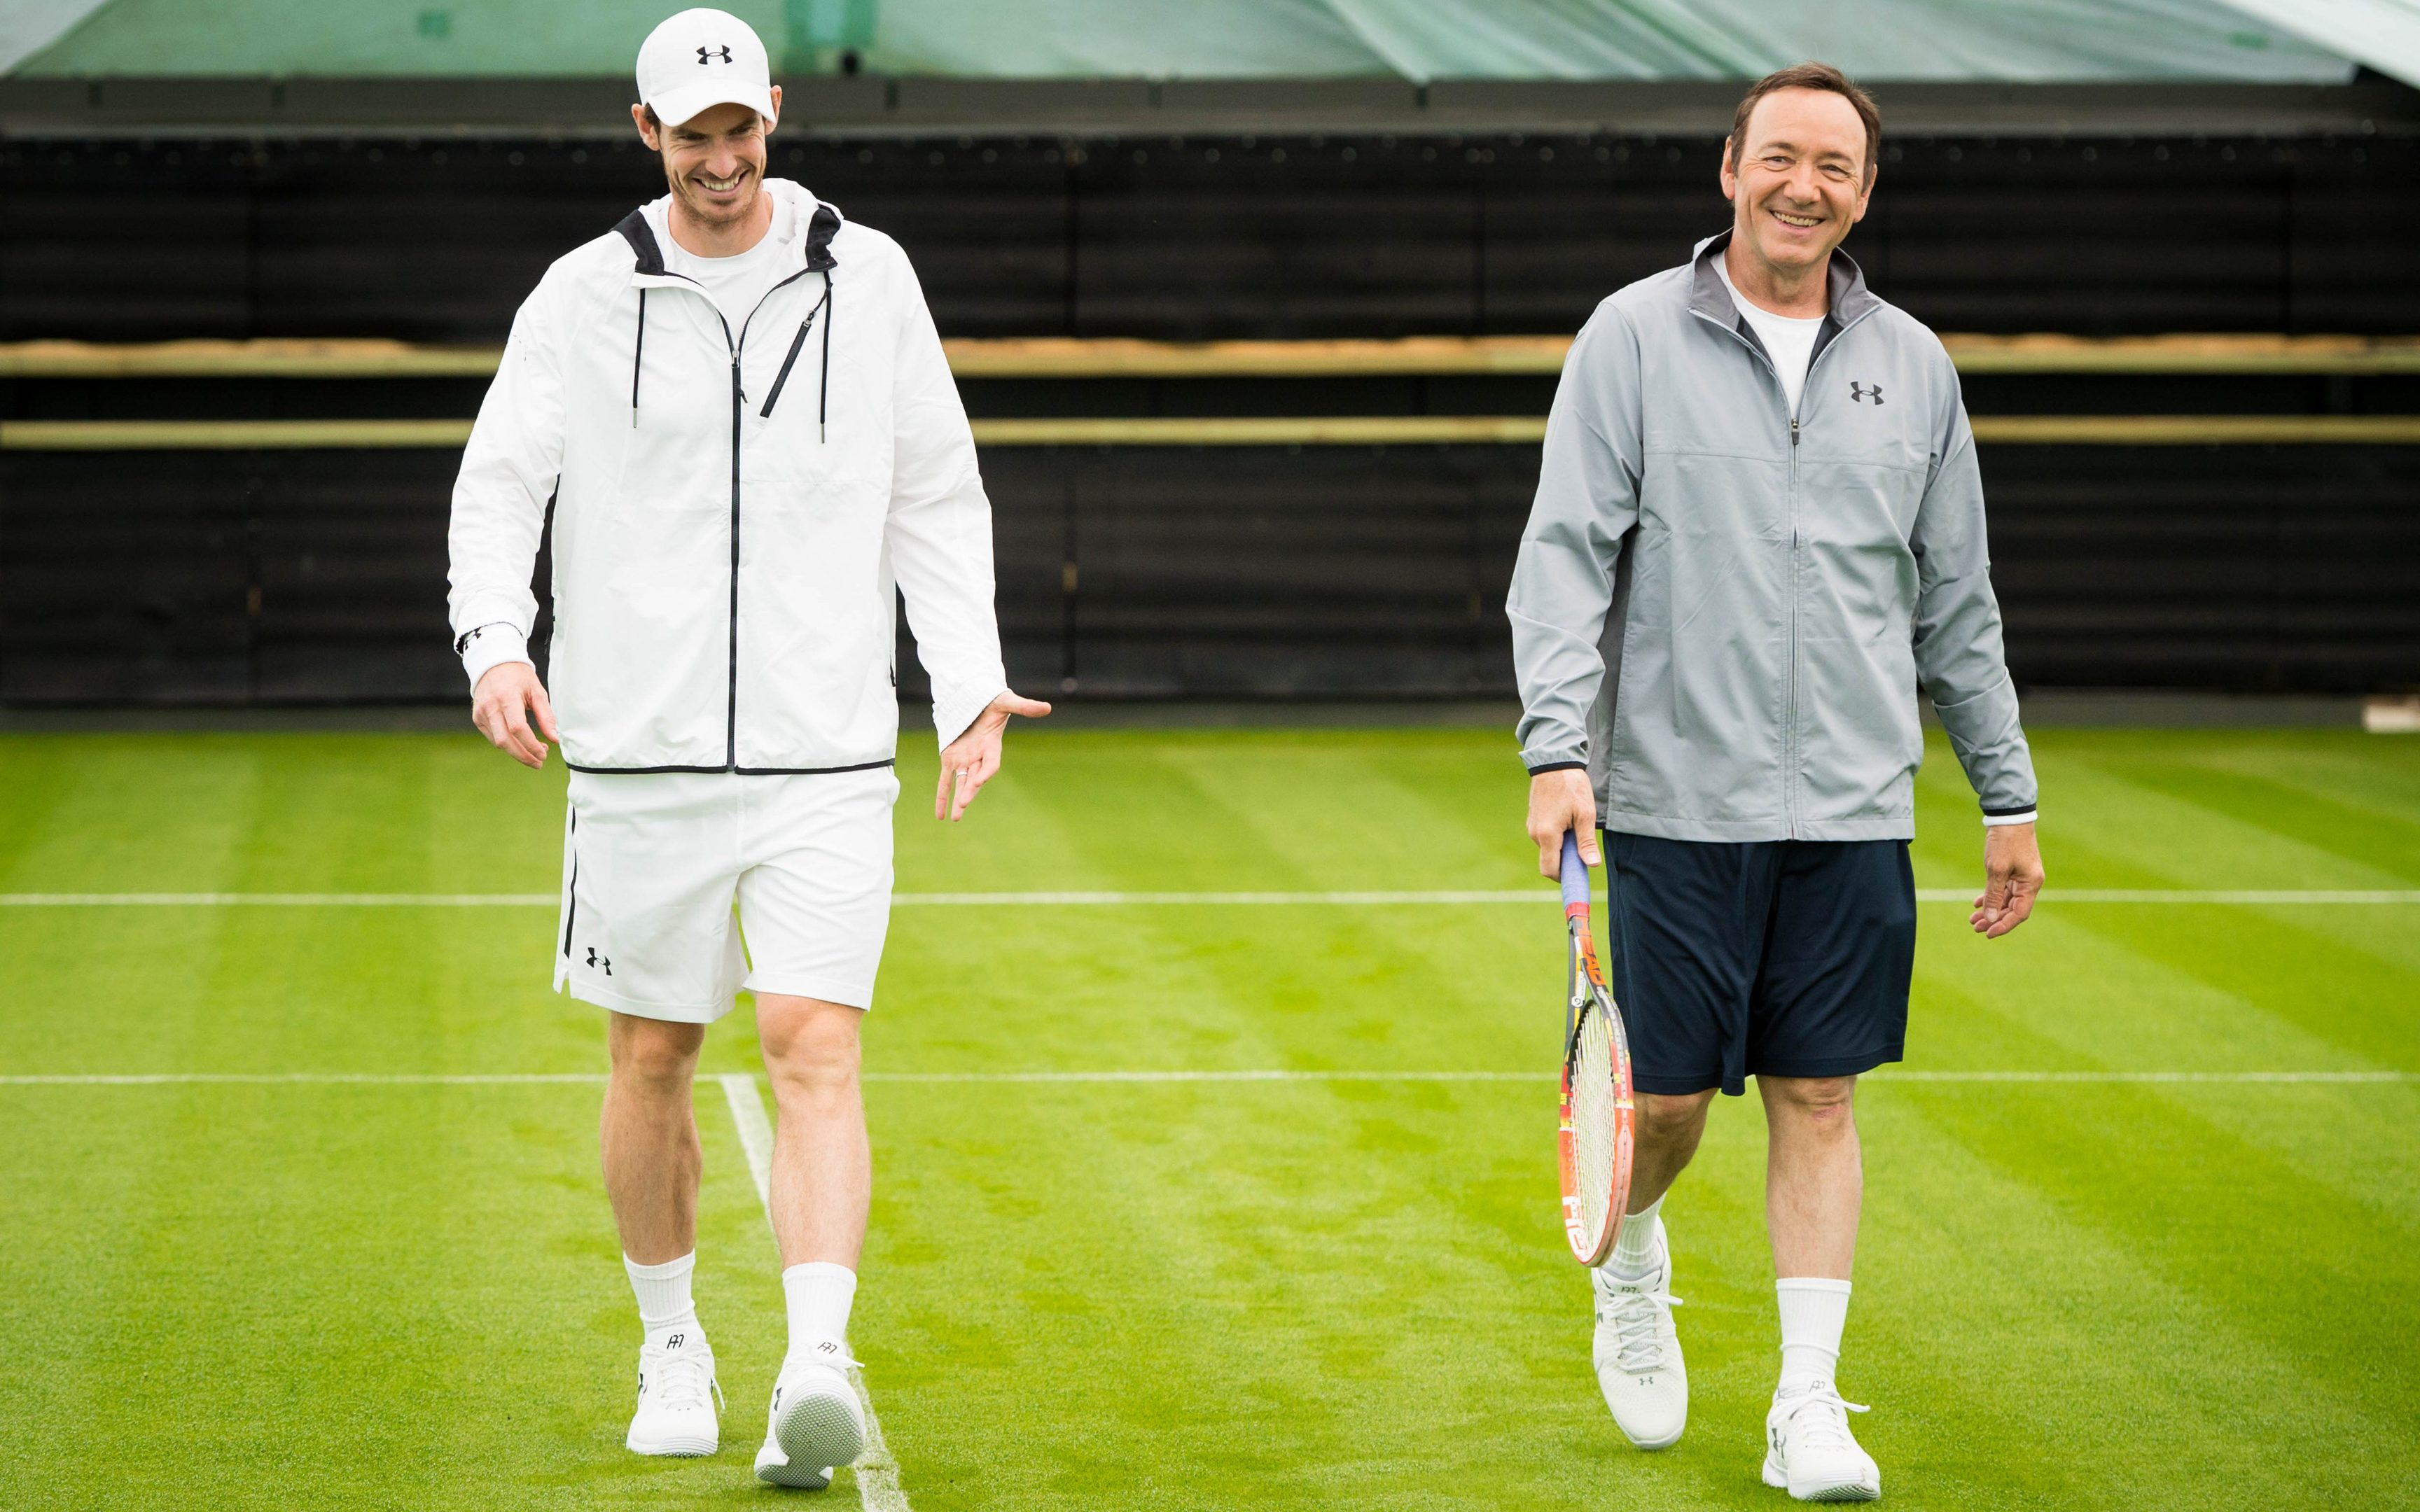 Andy Murray and Kevin Spacey on the All England Club's Centre Court as they help launch WWF's campaign to double the number of tigers in the wild by the year 2022.